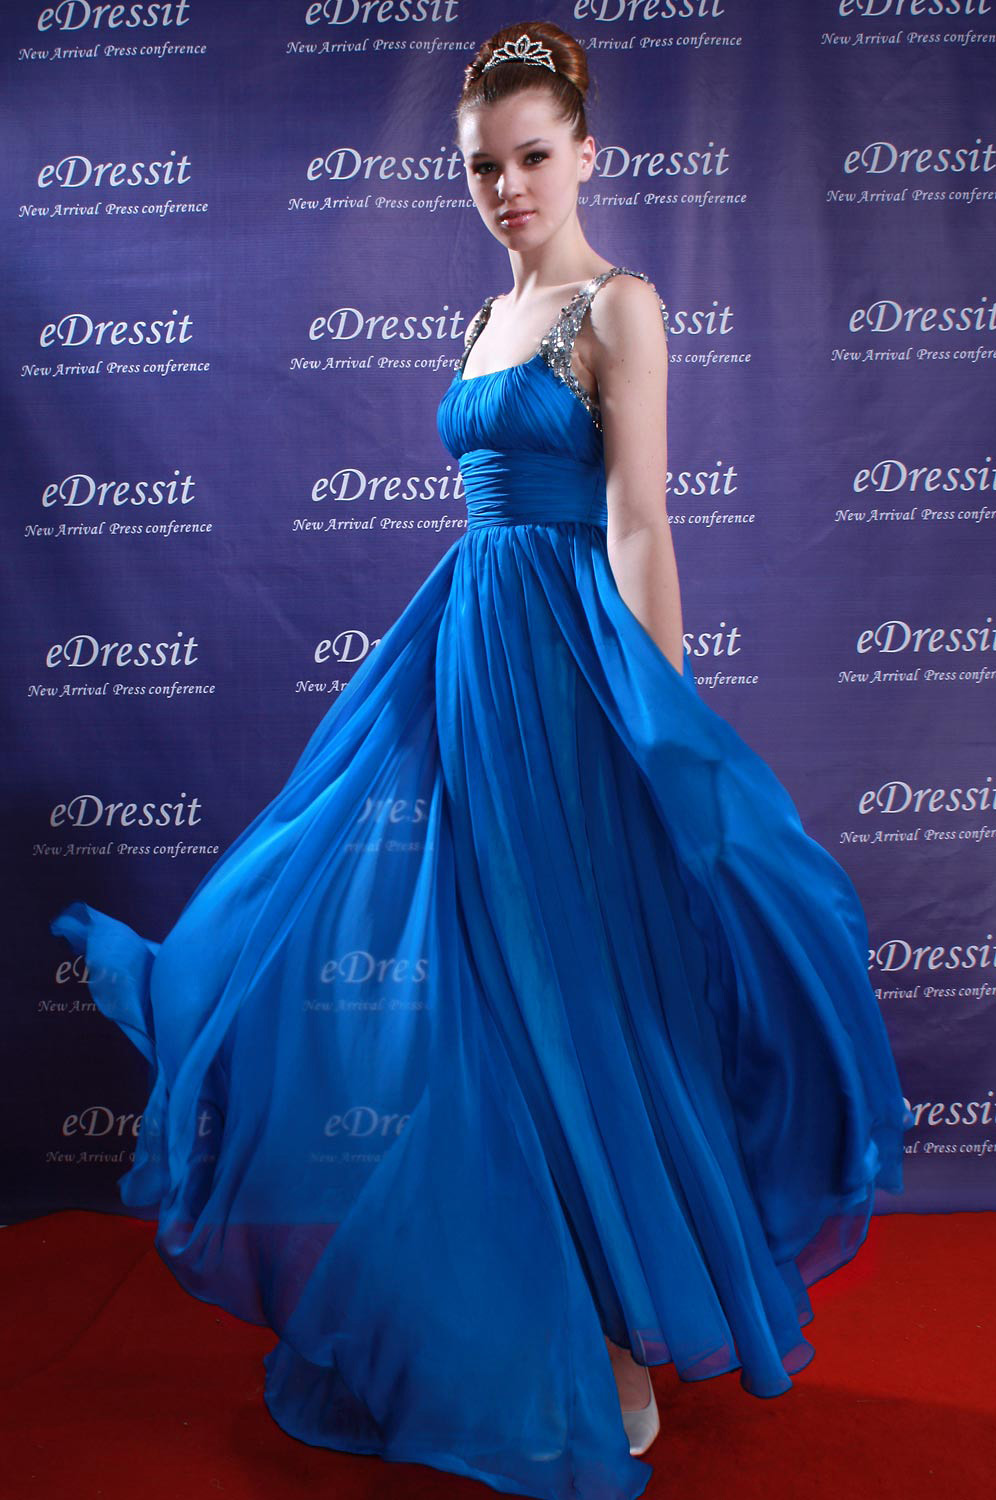 On sale !! eDressit blue  Prom Gown Evening Dress (00080905d)